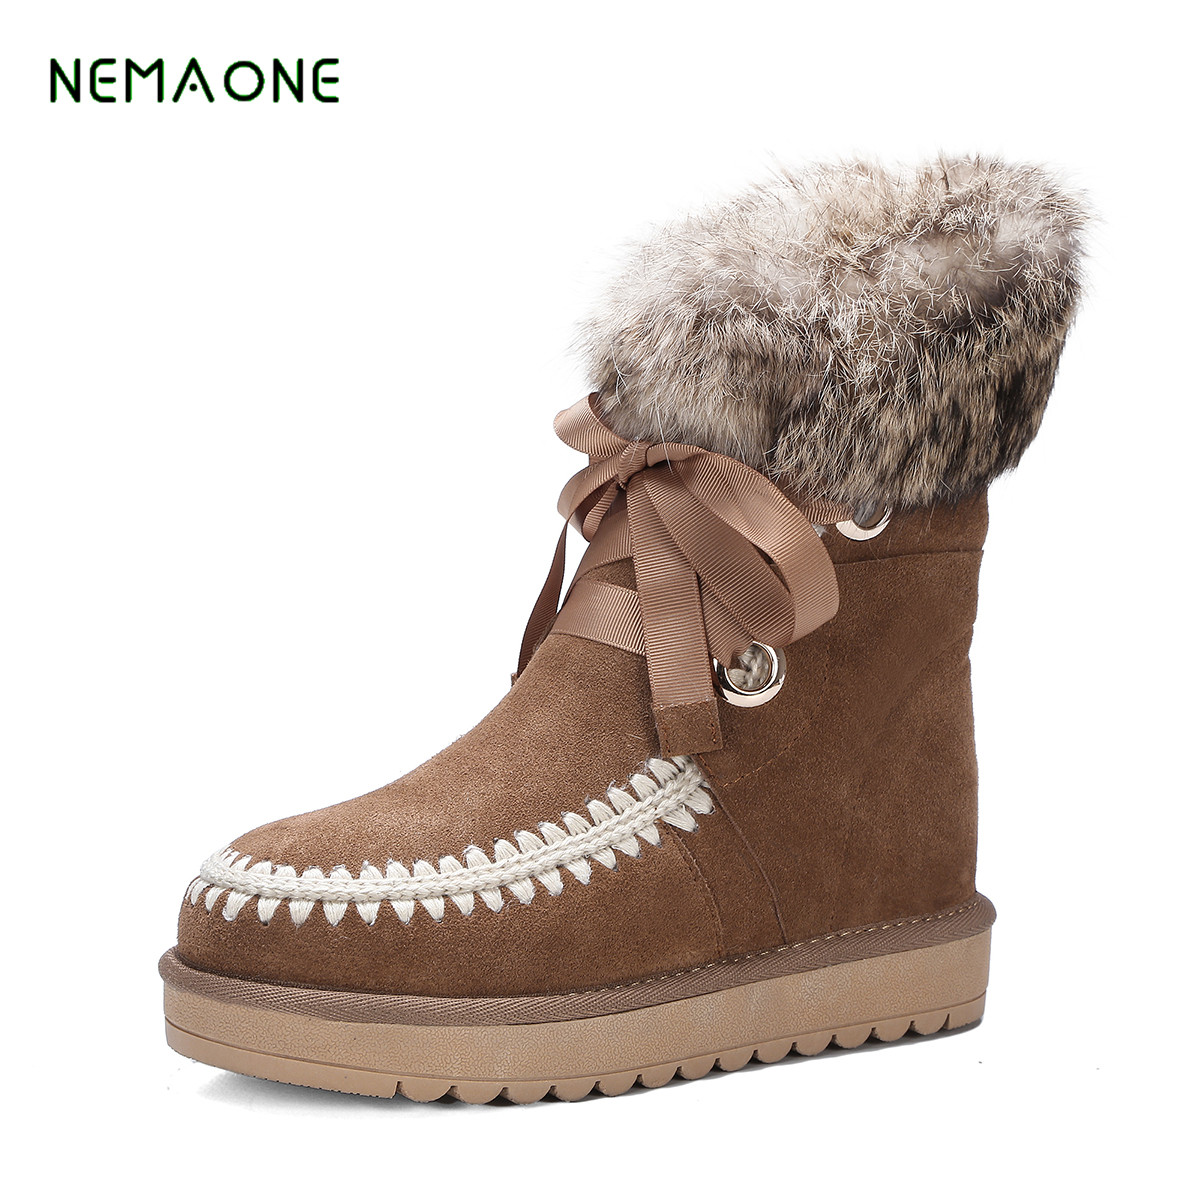 NEMAONE 2017 NEW Wool Genuine Leather Women s boots fur one thick warm snow boots warm